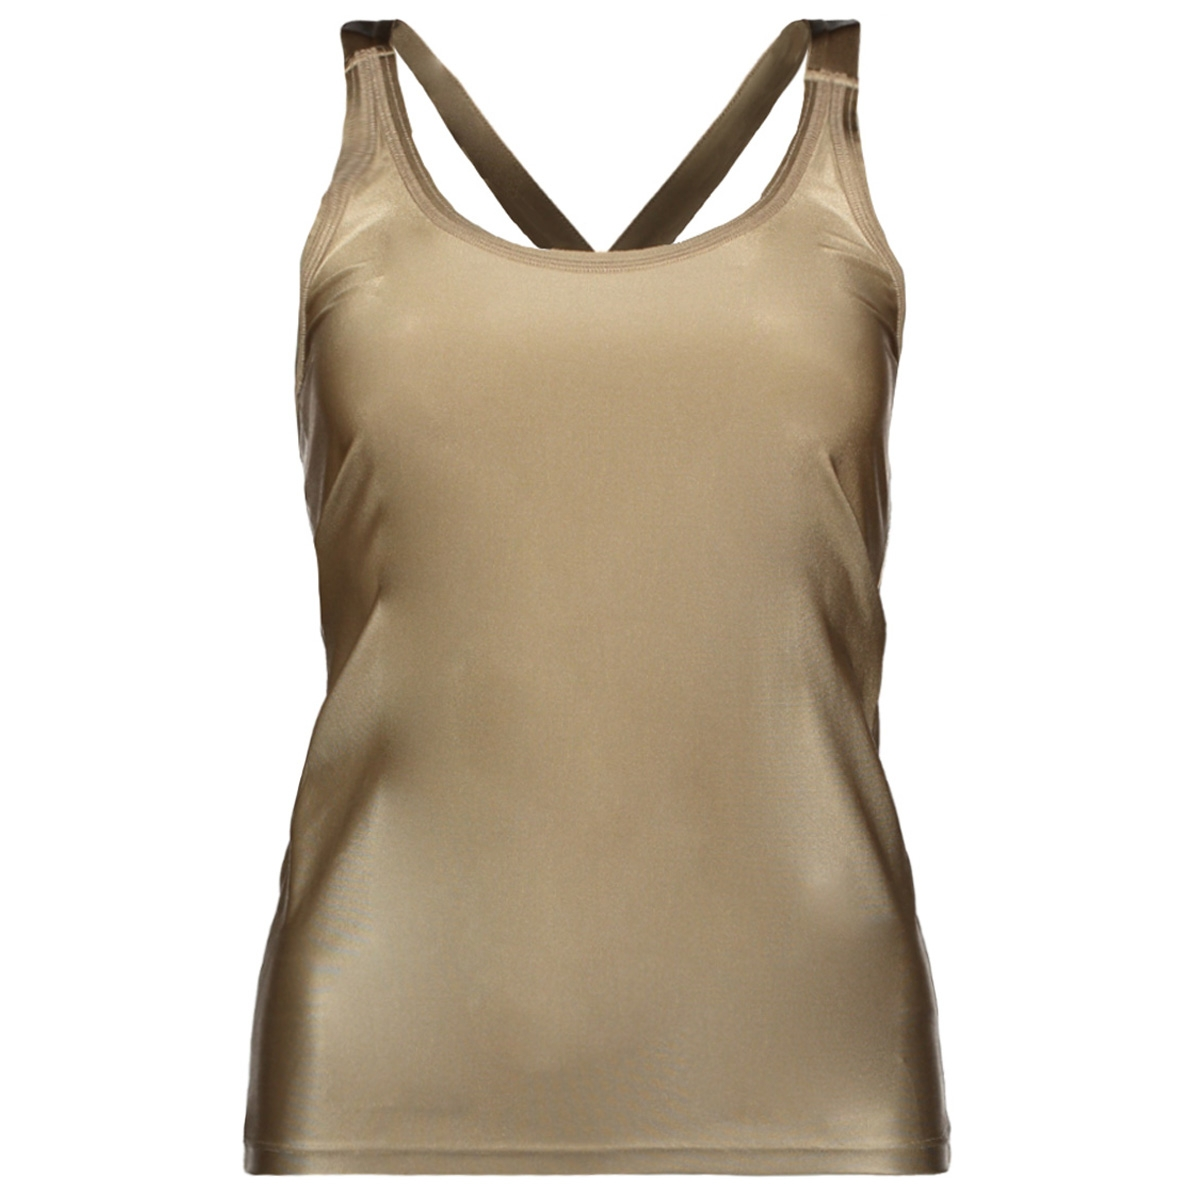 wrapper shiny gold 71 731 9100 10 days top gold